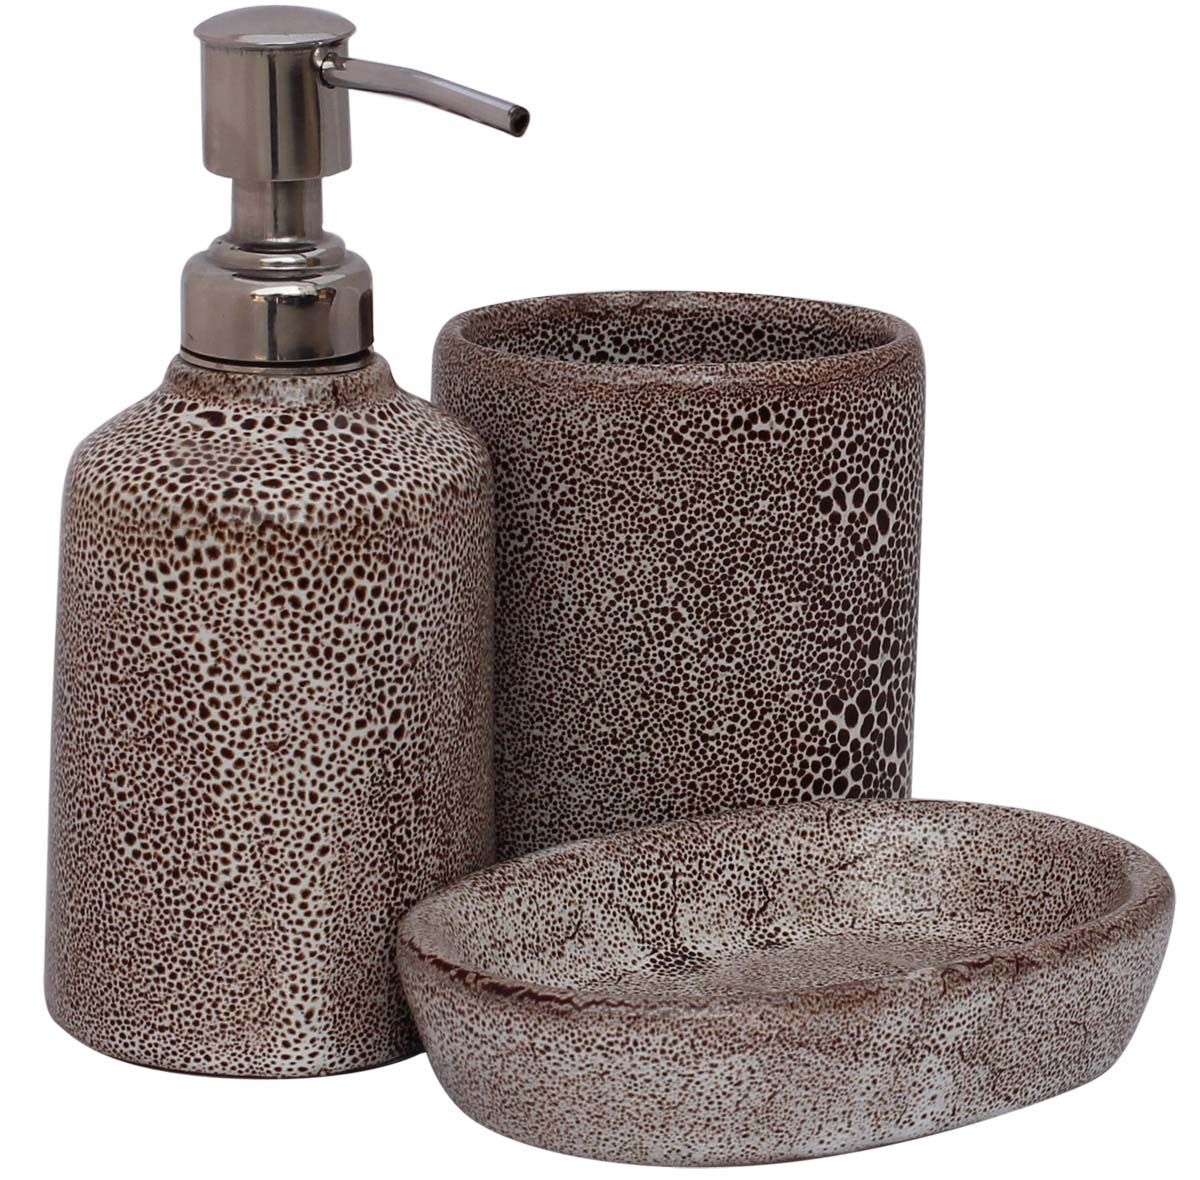 bulk wholesale handmade ceramic bath accessories set 3 items hand painted mottled - Bathroom Accessories Distributors